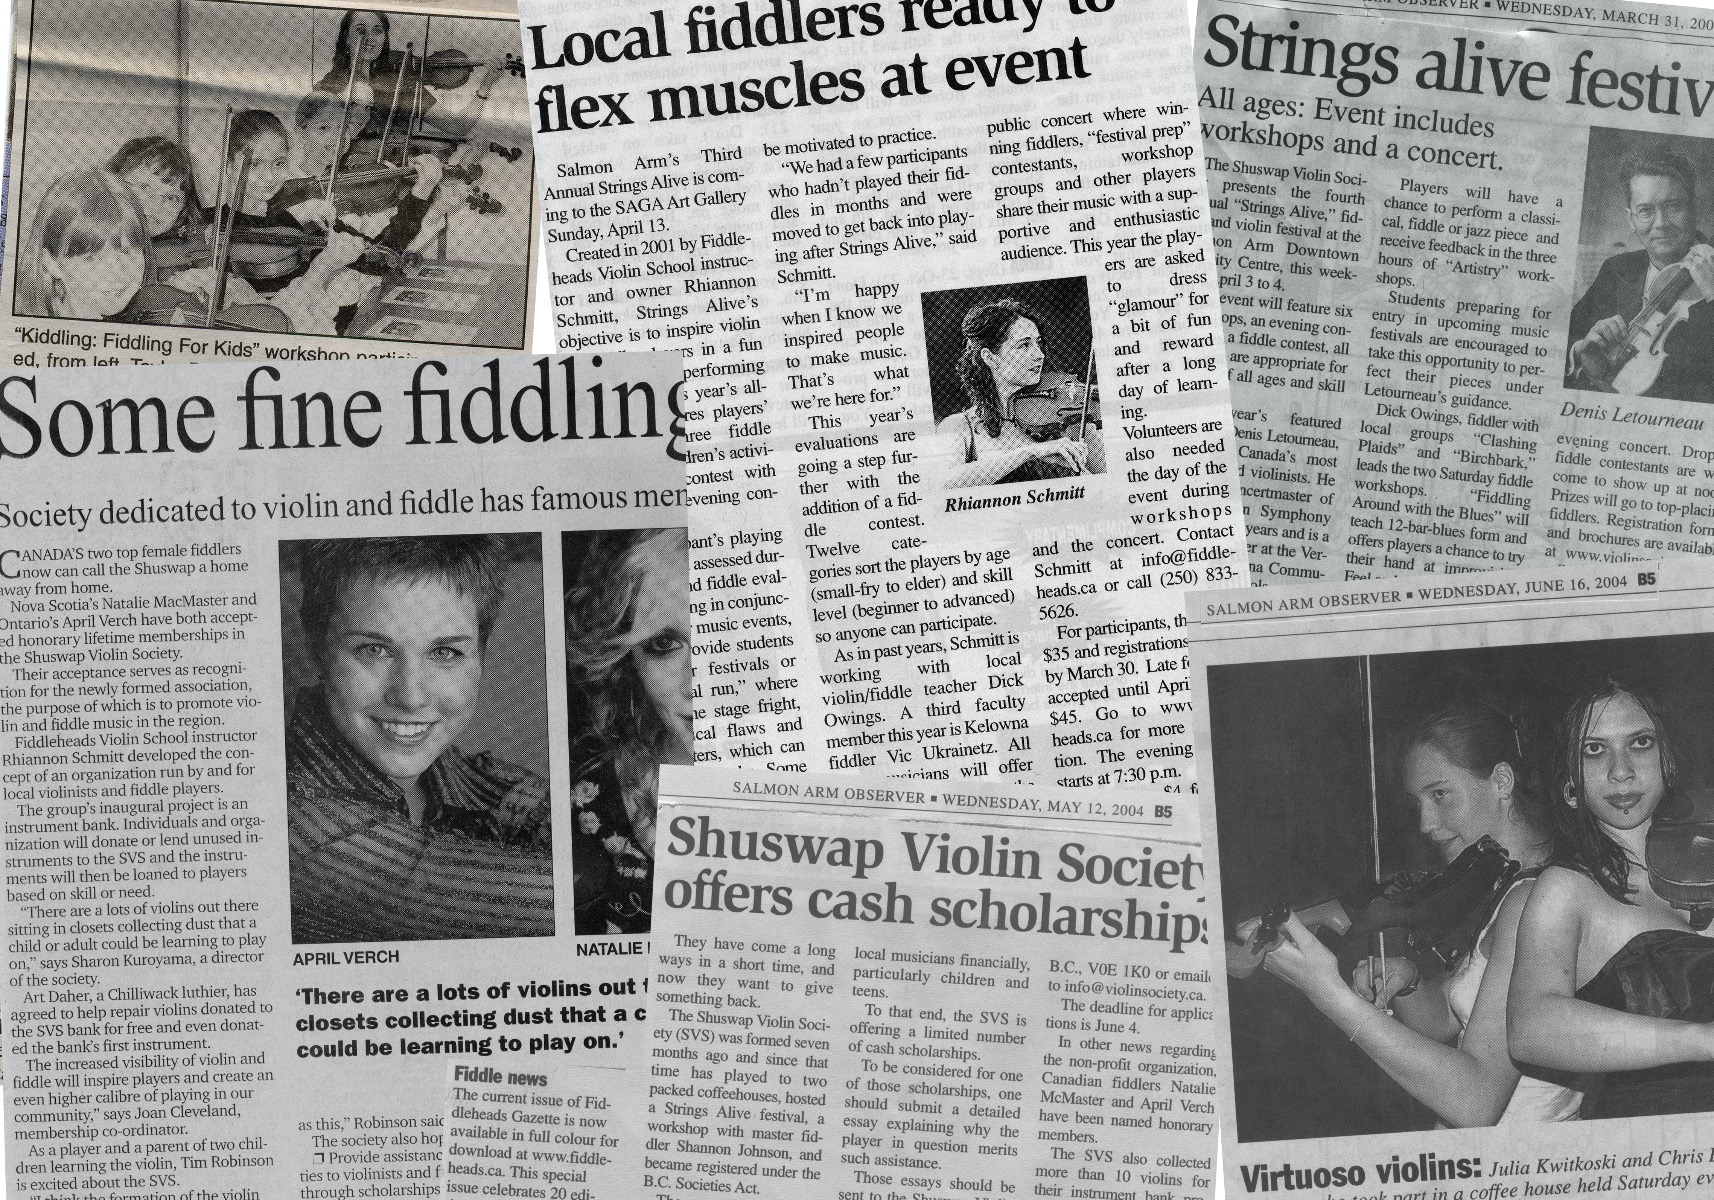 Photo: Just a sample of a few newspaper clippings from Salmon Arm, Kamloops and beyond illustrating the many programs and events offered by the Shuswap Violin Society.